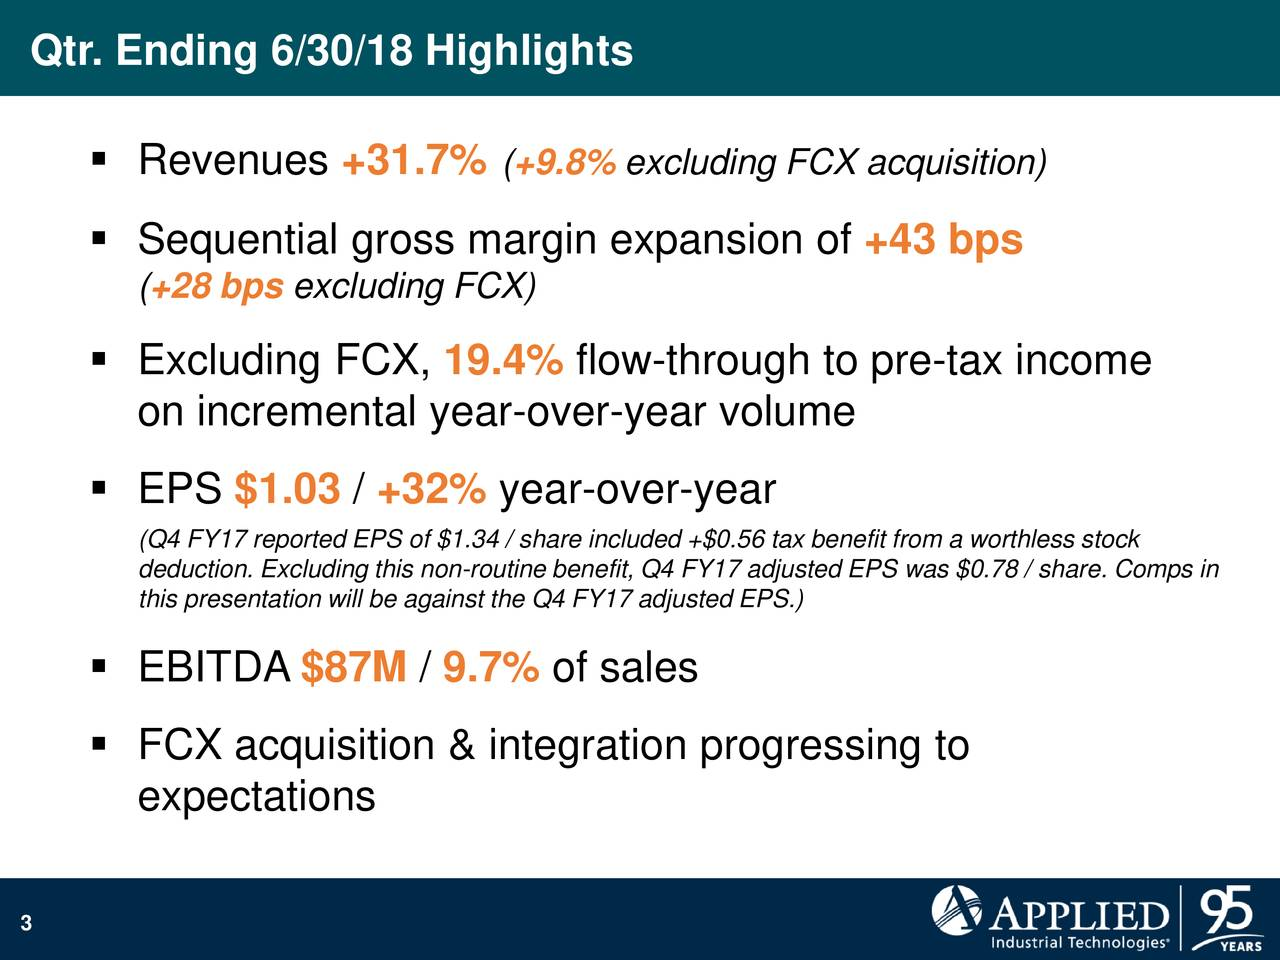  Revenues +31.7% (+9.8% excluding FCX acquisition)  Sequential gross margin expansion of +43 bps (+28 bps excluding FCX)  Excluding FCX, 19.4% flow-through to pre-tax income on incremental year-over-year volume  EPS $1.03 / +32% year-over-year (Q4 FY17 reported EPS of $1.34 / share included +$0.56 tax benefit from a worthless stock this presentation will be against the Q4 FY17 adjusted EPS.)ted EPS was $0.78 / share. Comps in  EBITDA $87M / 9.7% of sales  FCX acquisition & integration progressing to expectations 3